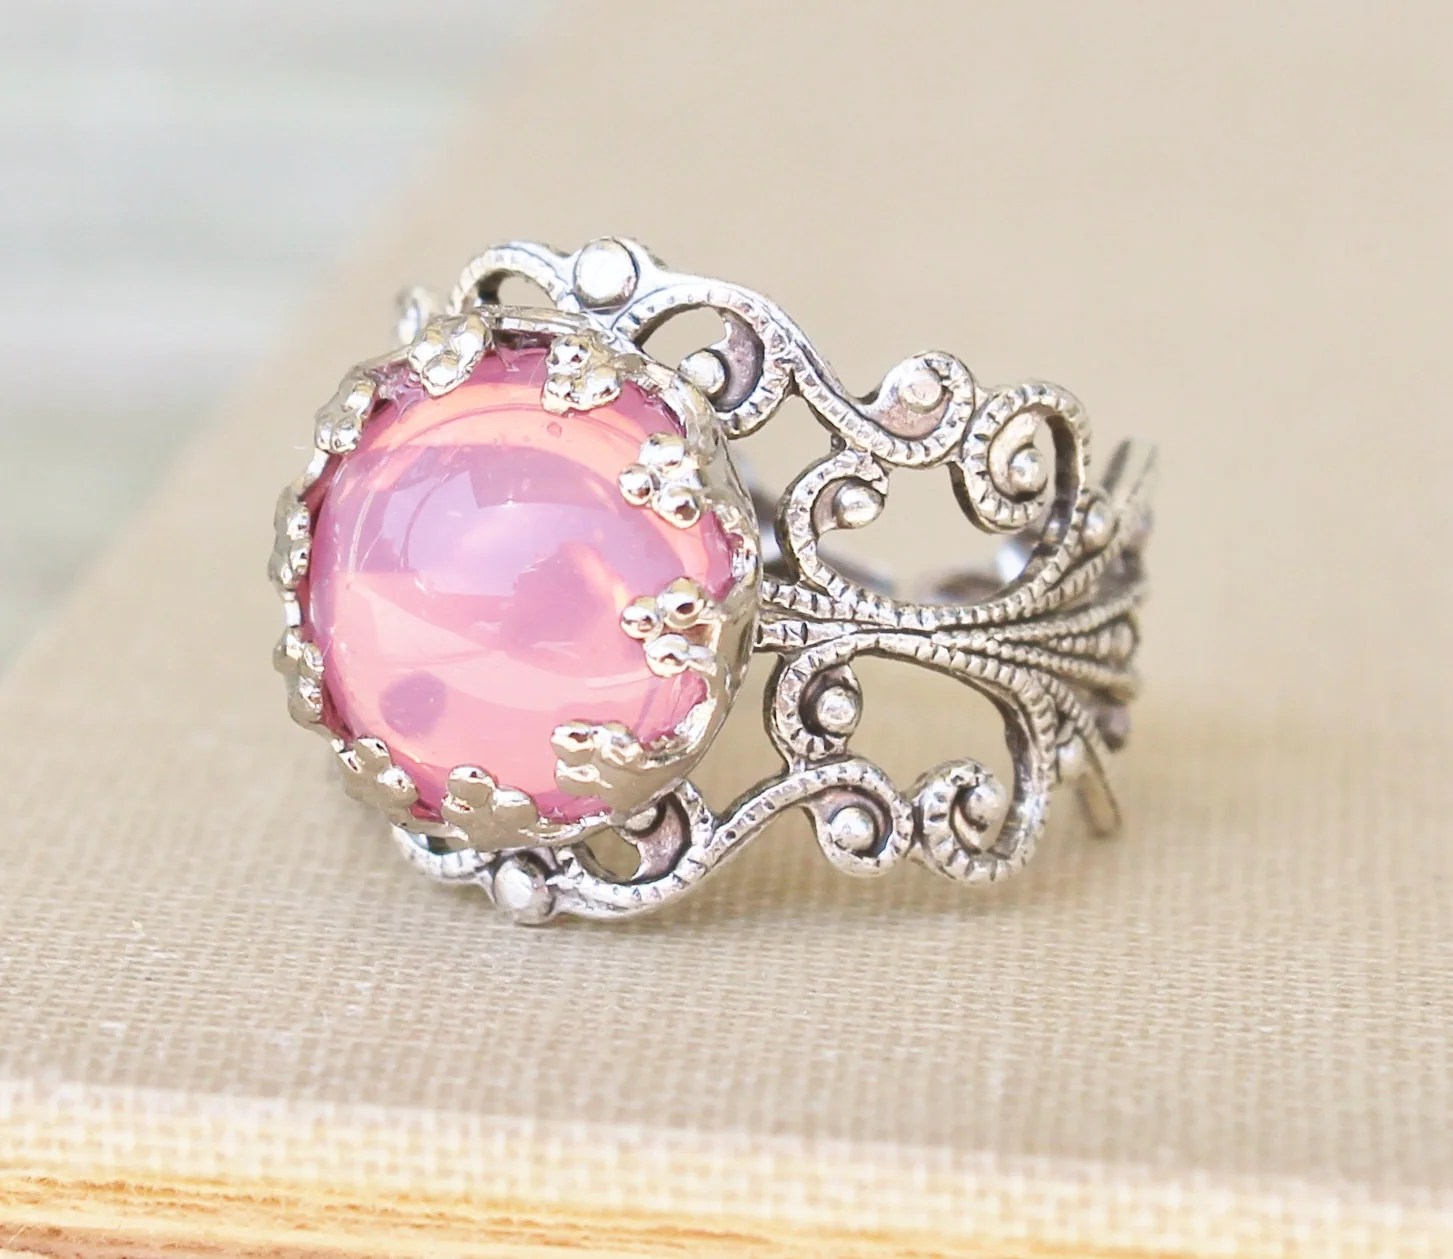 Antique Wedding Rings With Colored Stones